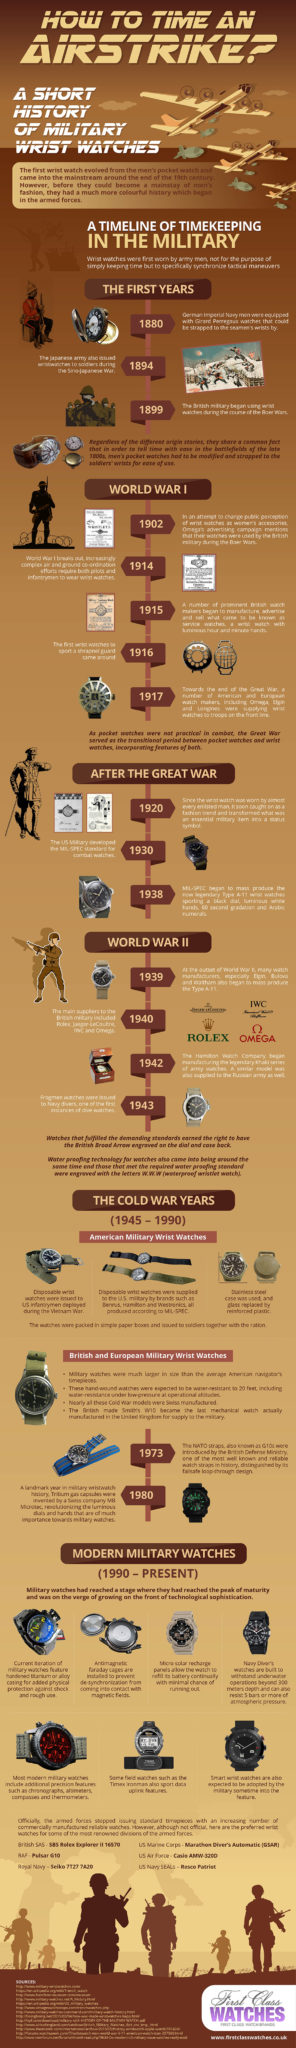 How To Time An Airstrike - A Short History of Military Watches